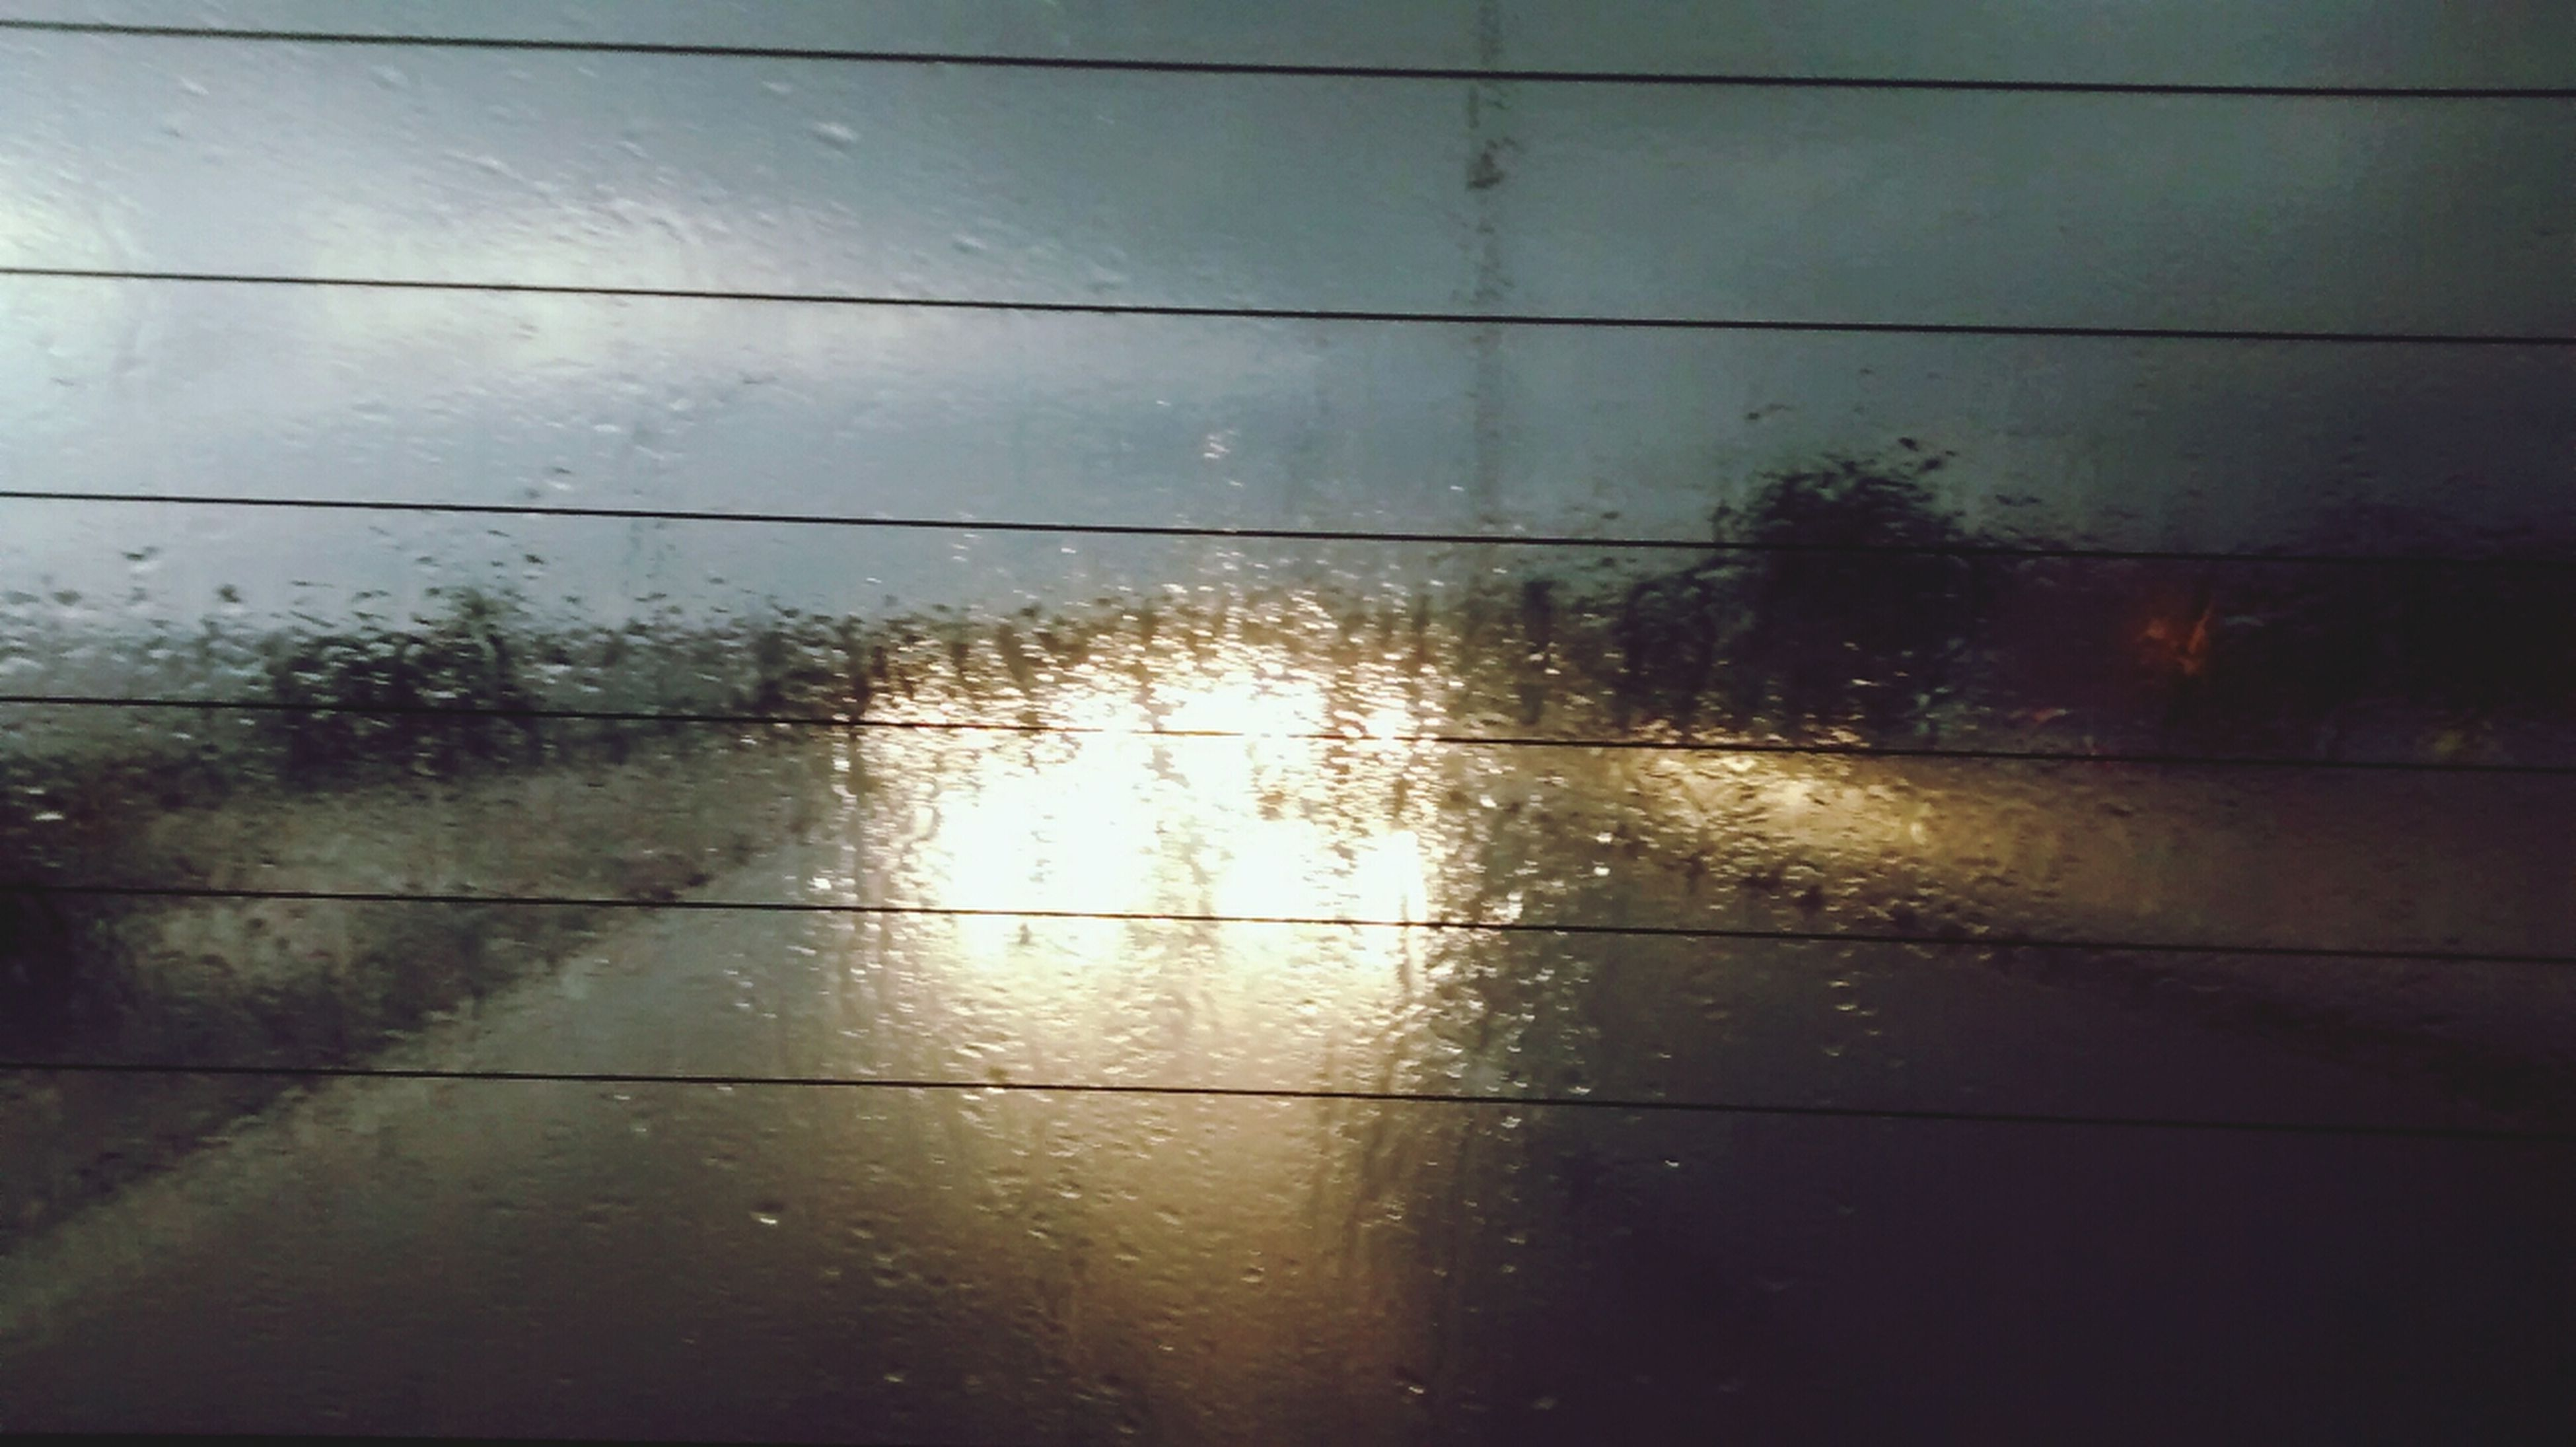 water, wet, drop, rain, window, glass - material, transparent, raindrop, indoors, weather, season, reflection, sky, full frame, backgrounds, monsoon, tree, glass, close-up, no people